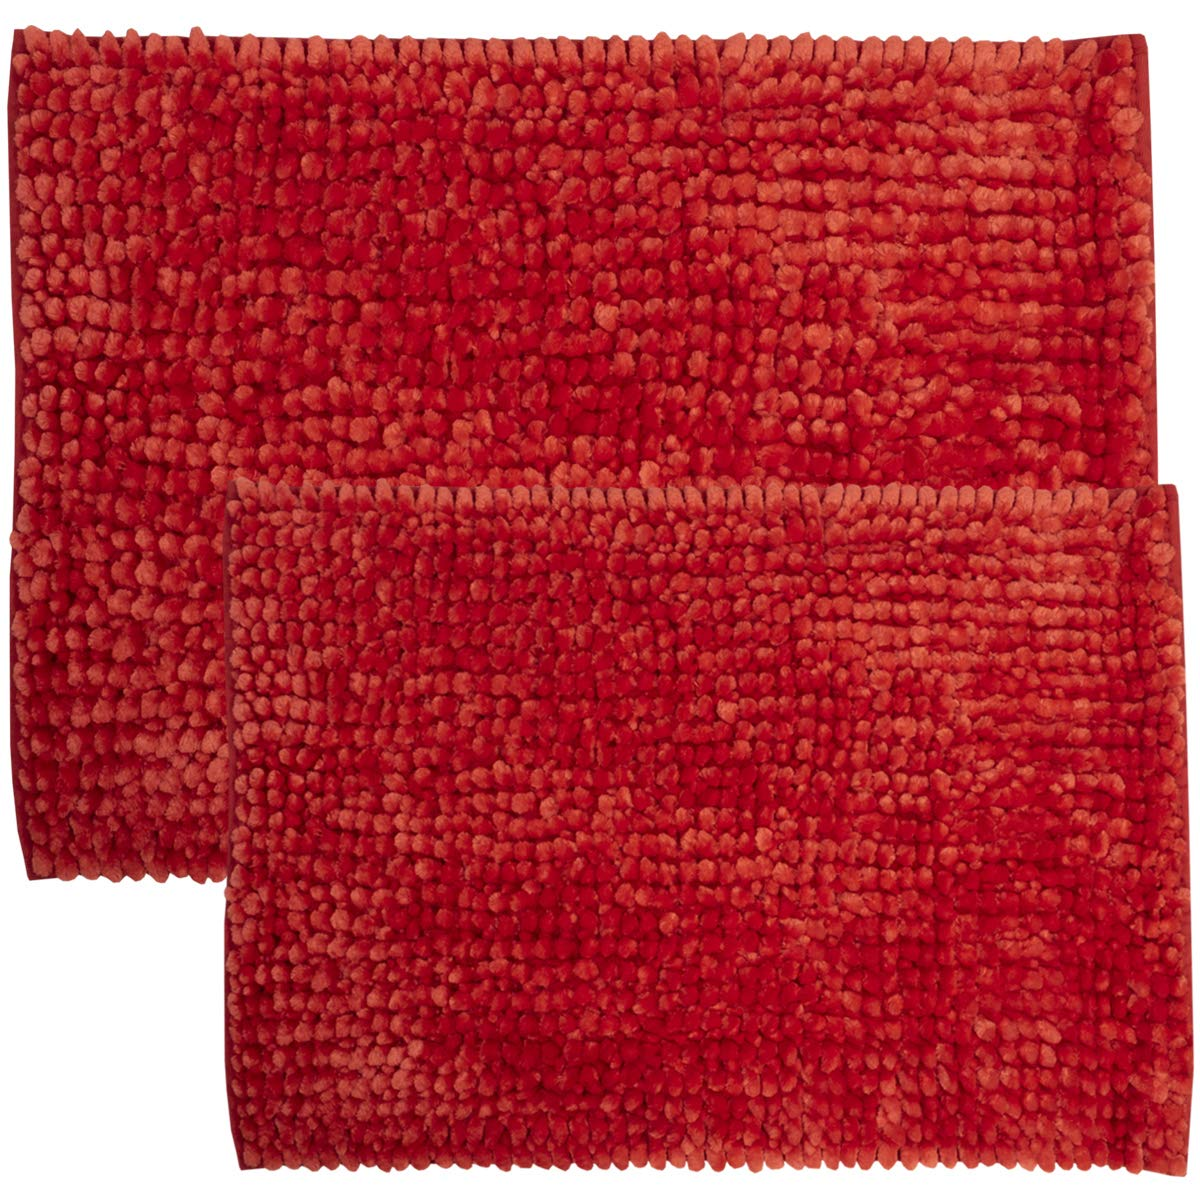 Amazon Com Sweet Home Collection Bath Set 2 Piece Butter Chenille Noodle Soft Luxurious Rugs Absorbent Non Slip Latex Back Microfiber Bathroom Mat 1 17 X 24 1 20 X 32 Burgundy